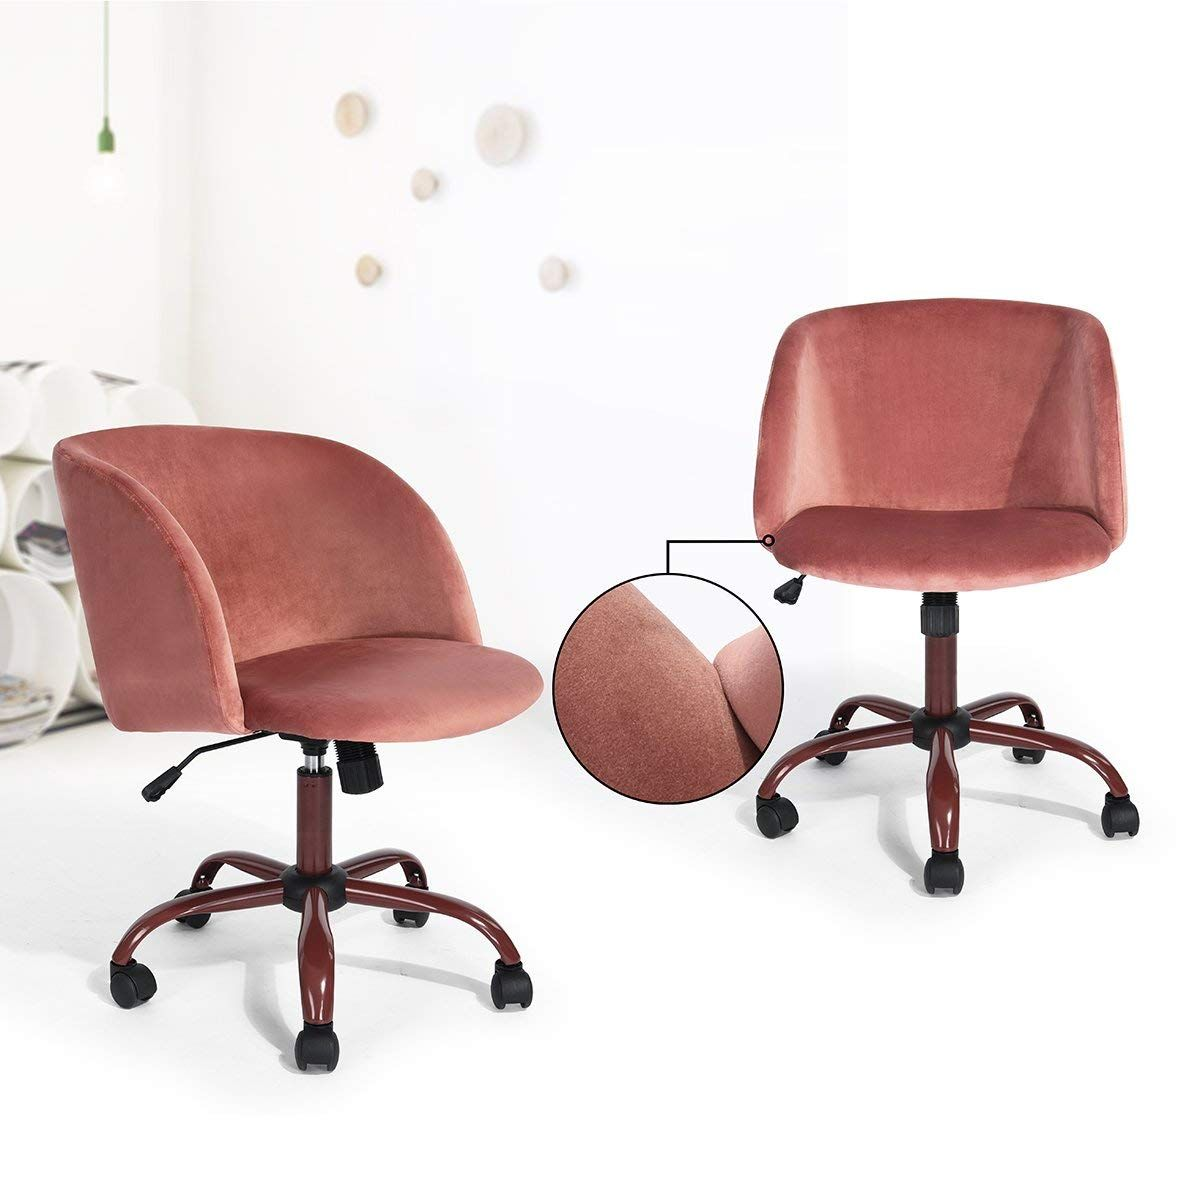 Swivel Computer Desk Chair Ergonomic Modern Accent Cheap Office Chairs Arm Chairs Living Room Rocking Chair Nursery